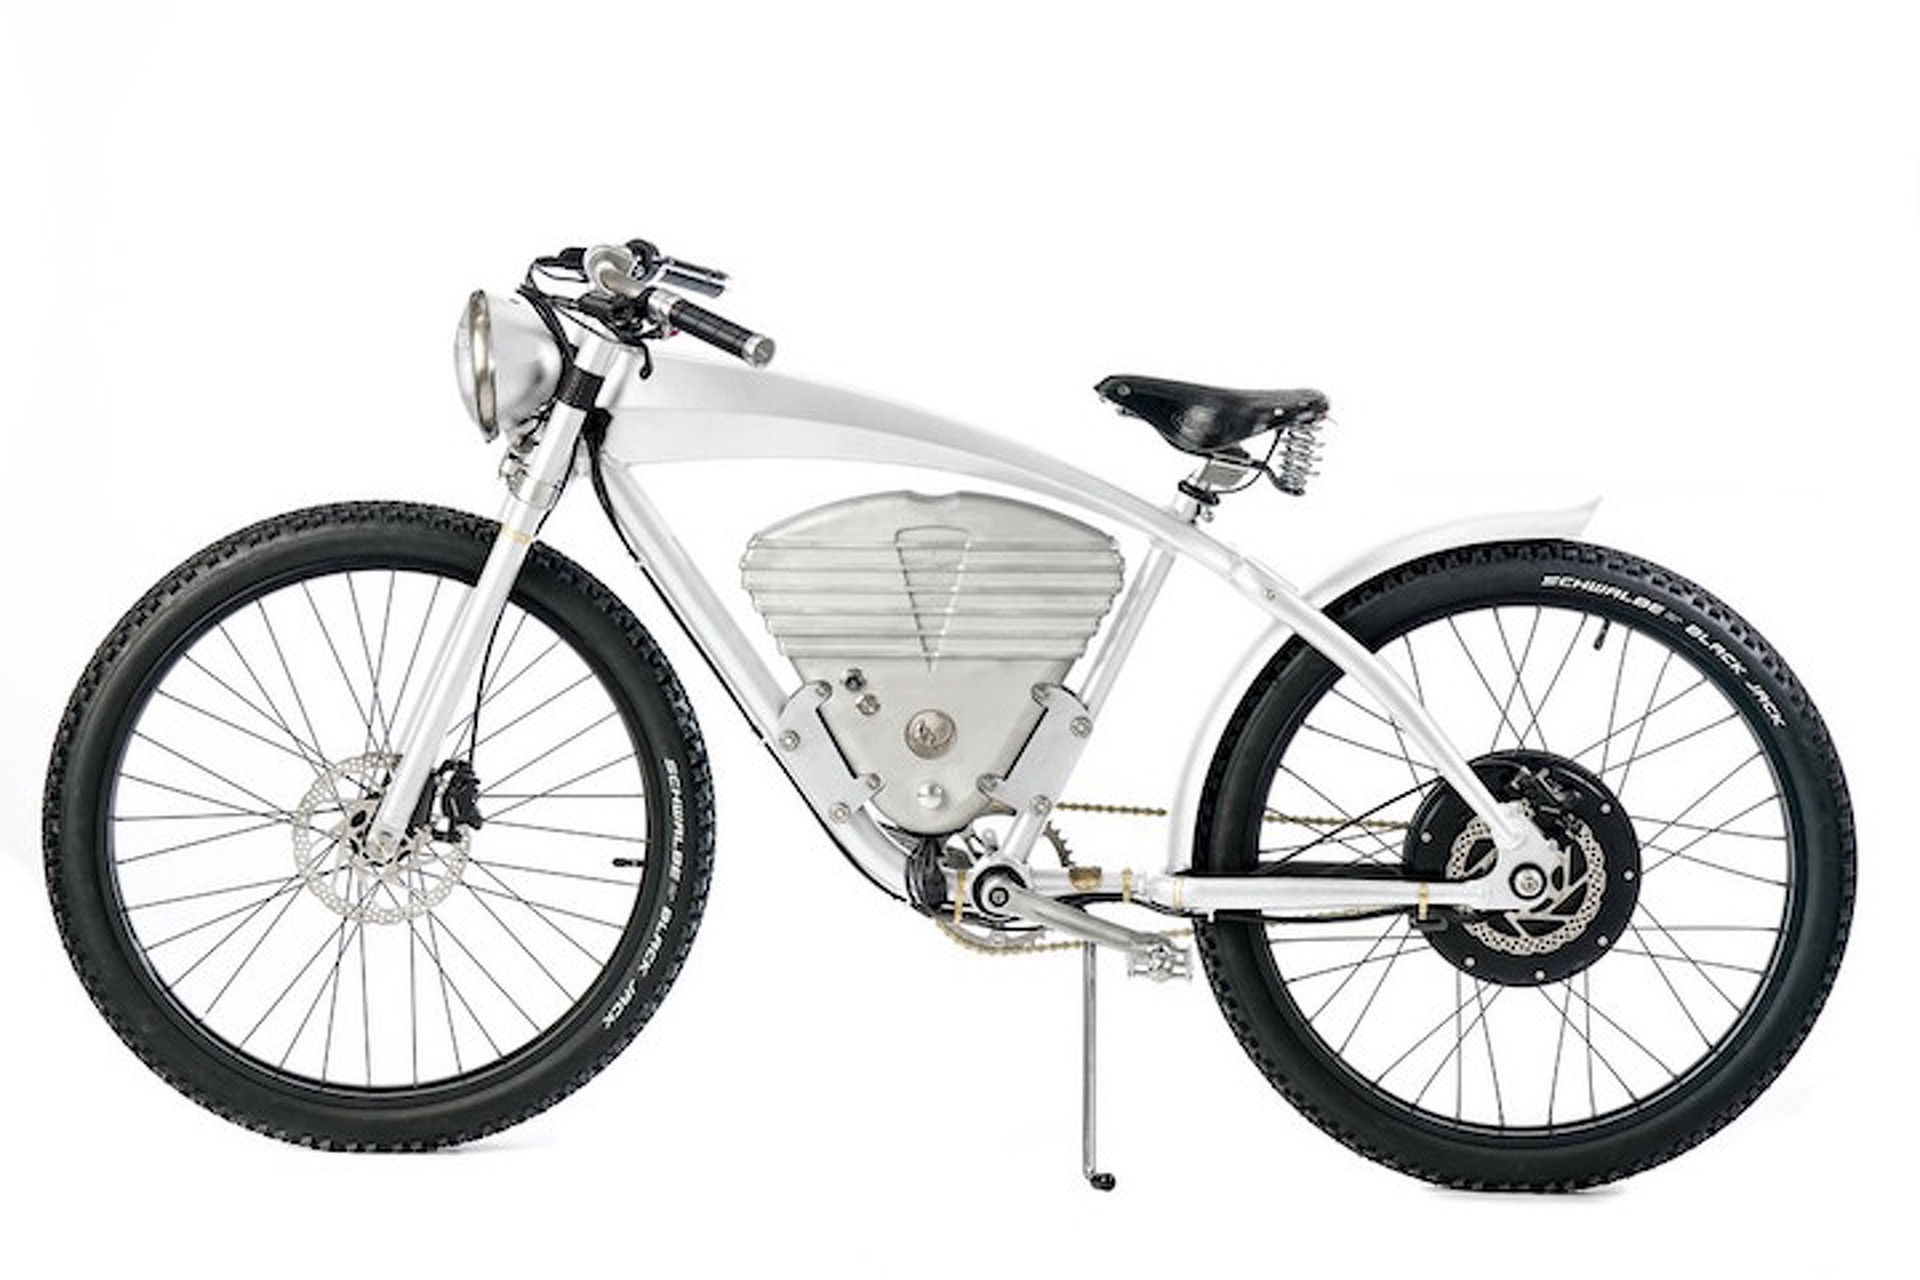 ICON Wants You To Bid on its Beautiful Electric Bicycle